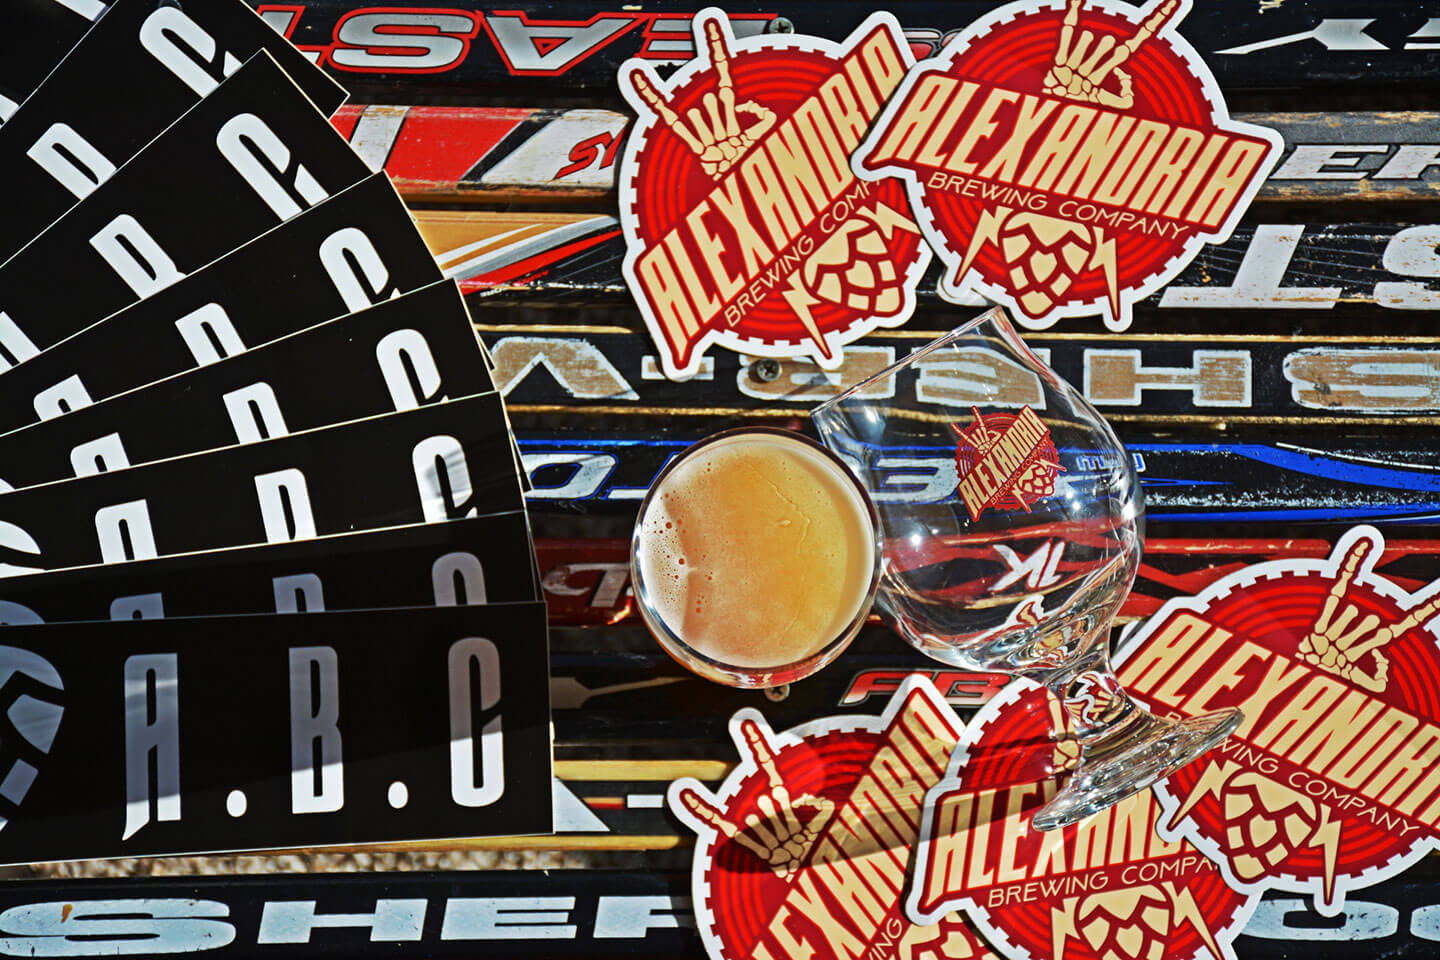 Several stickers featuring the Alexandria Brewing Company logo and alternate mark are displayed on a table